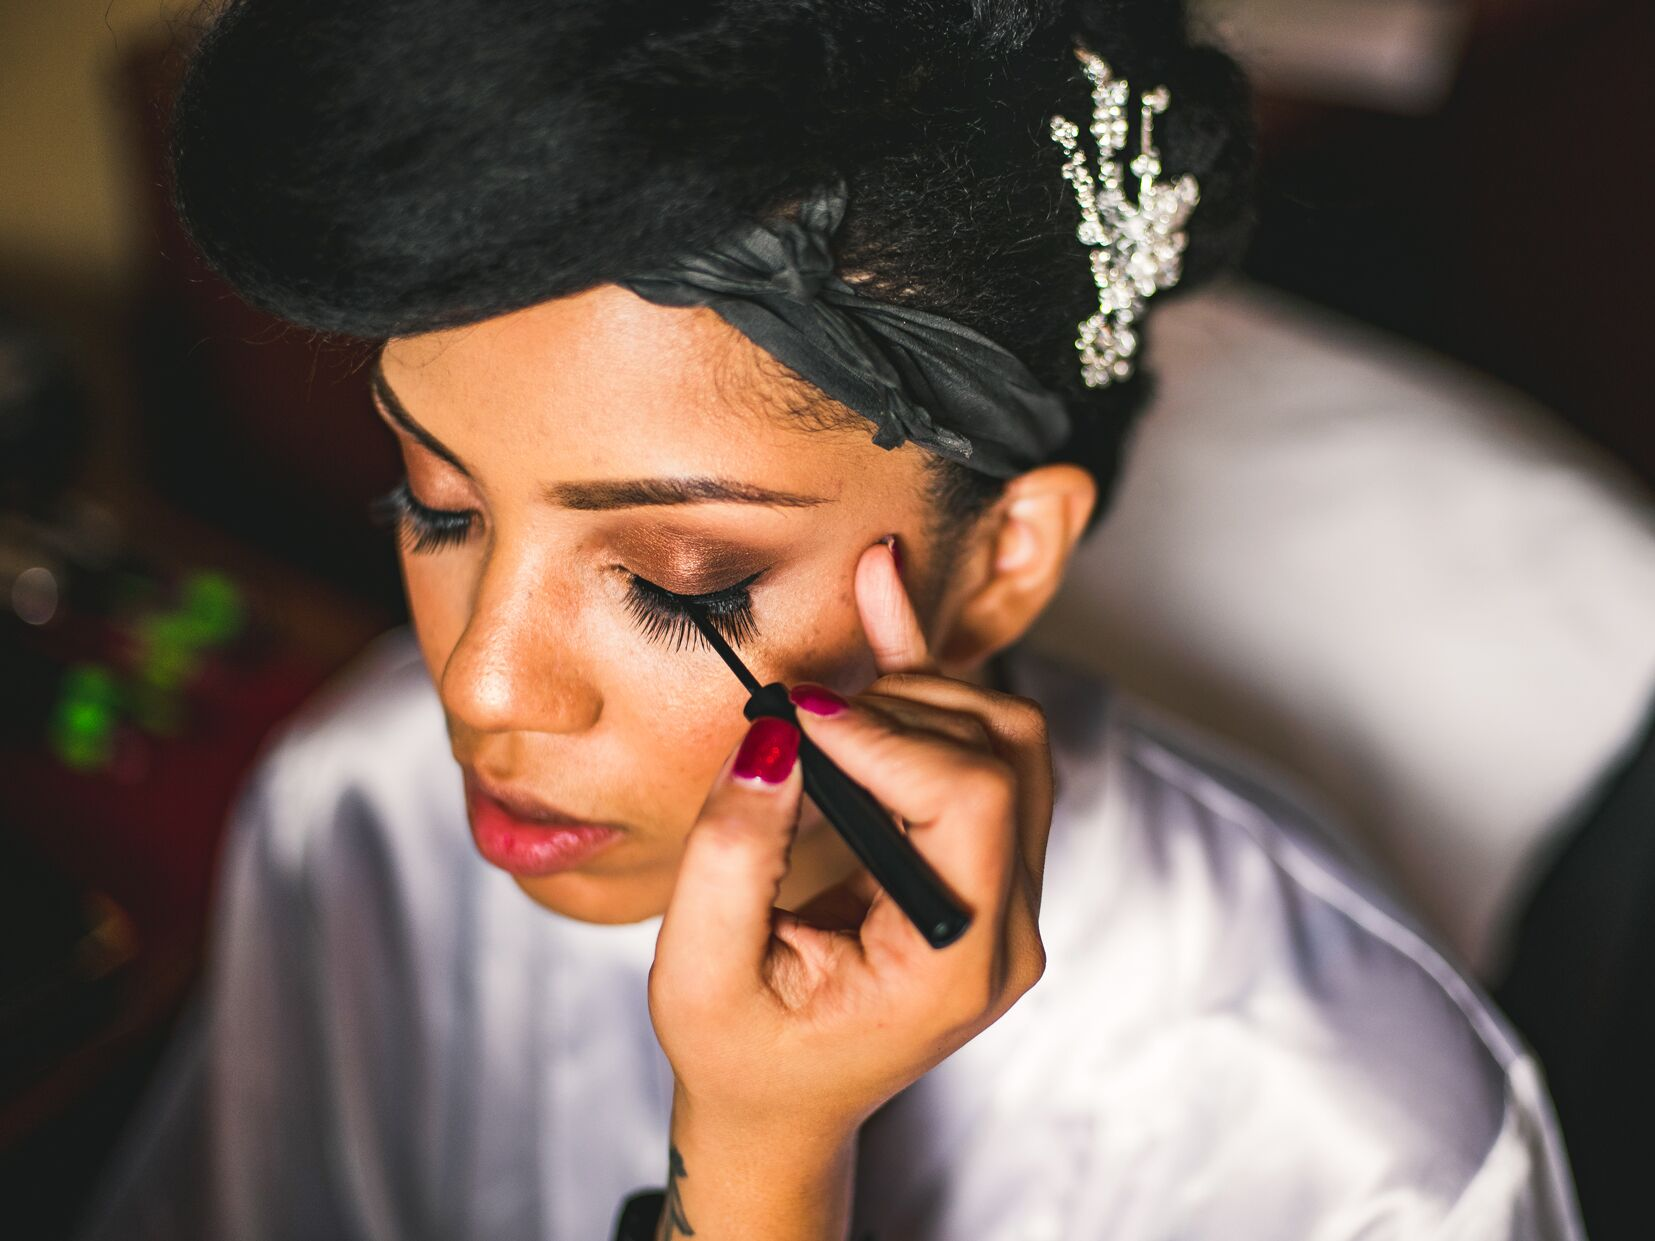 how much does wedding hair and makeup cost?